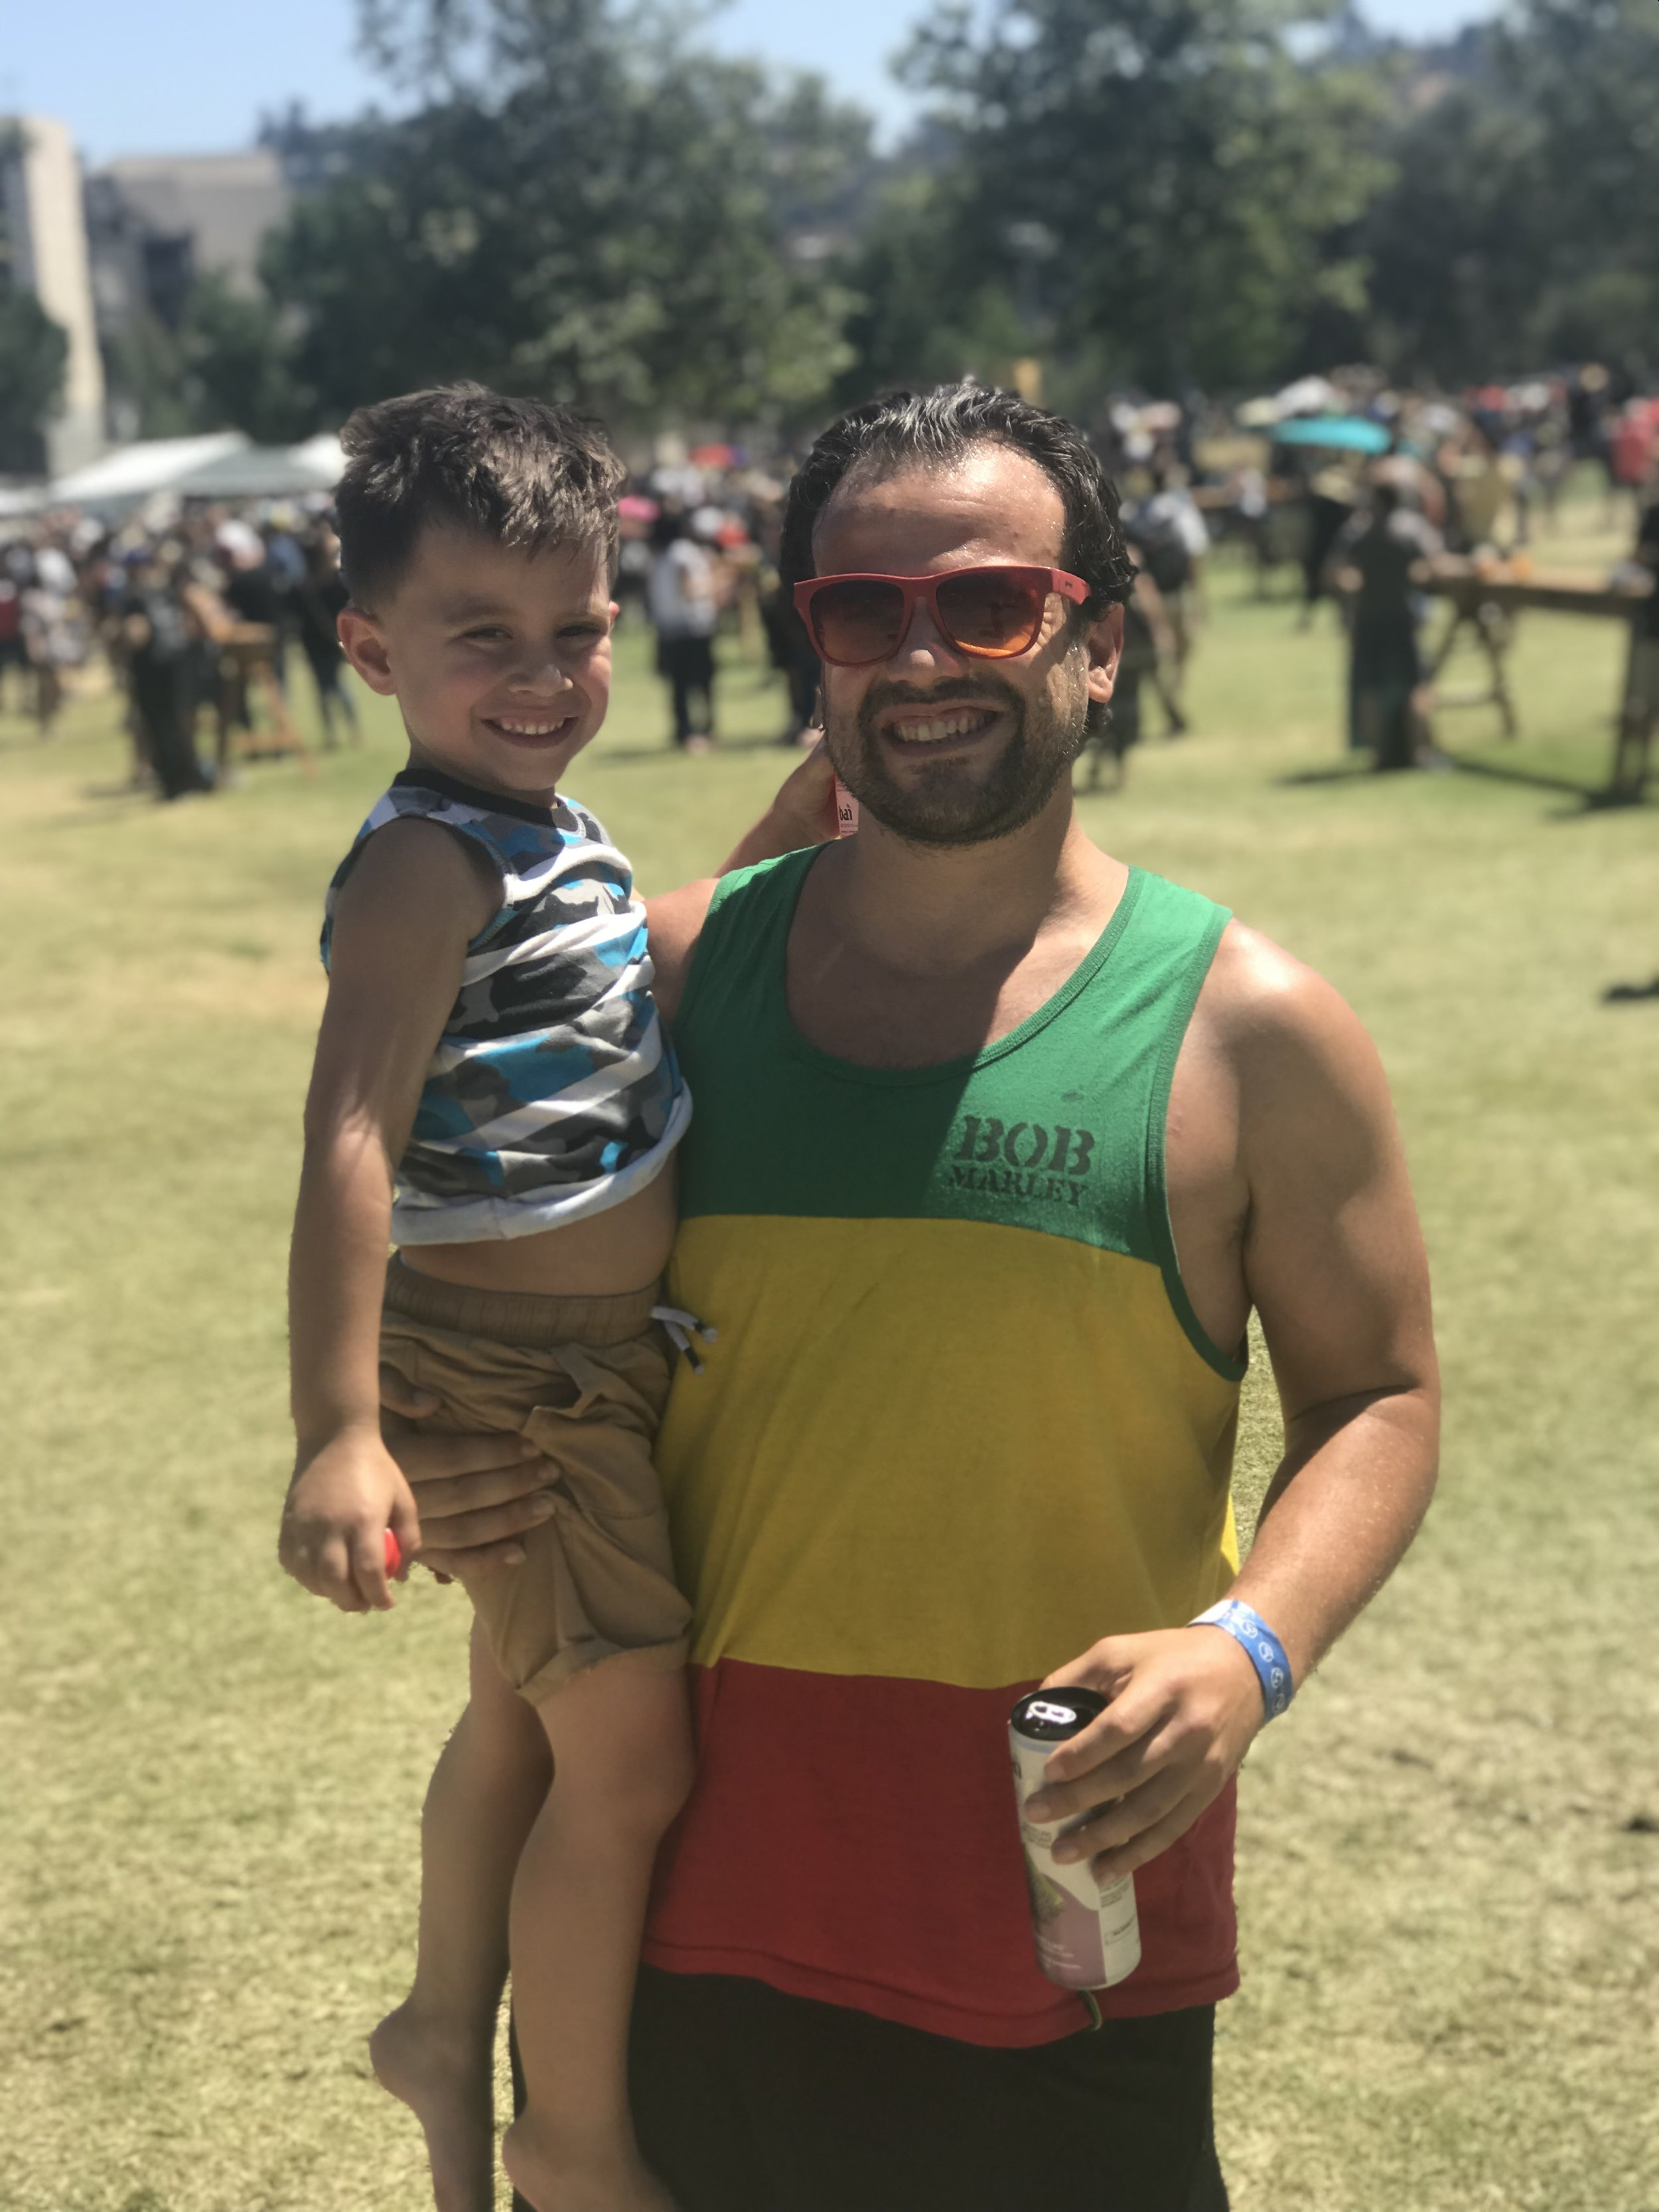 The festival is a family affair with people of all ages in attendance.